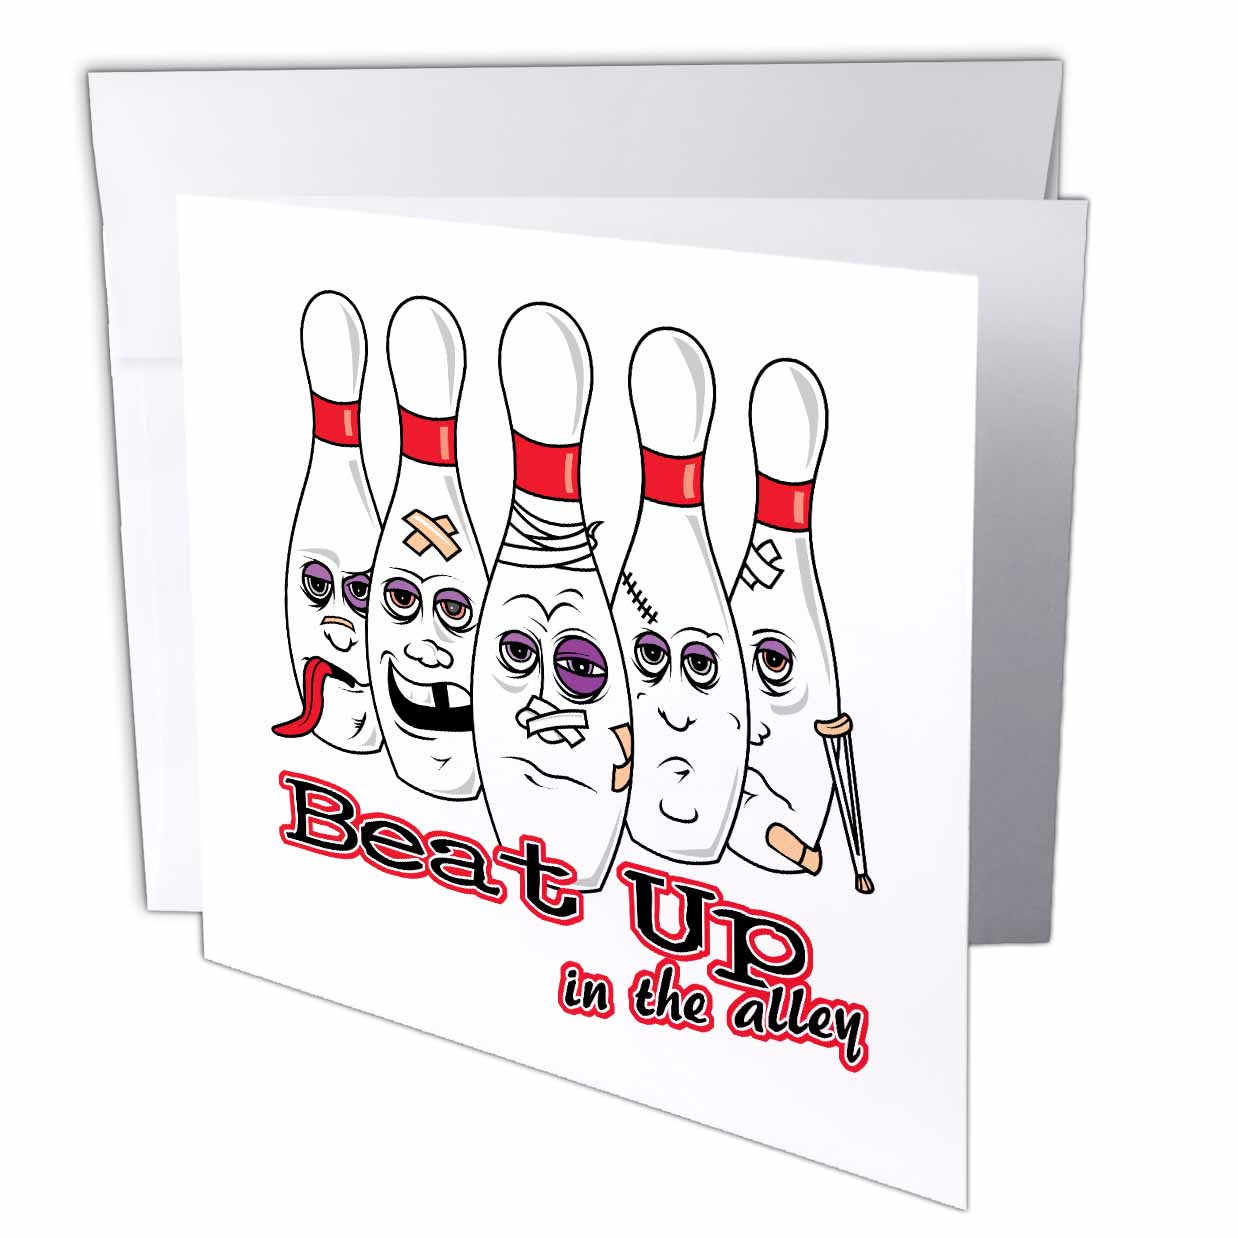 3dRose Beat Up In The Alley Bowling Pins Sports Design Humor, Greeting Cards, 6 x 6 inches, set of 12